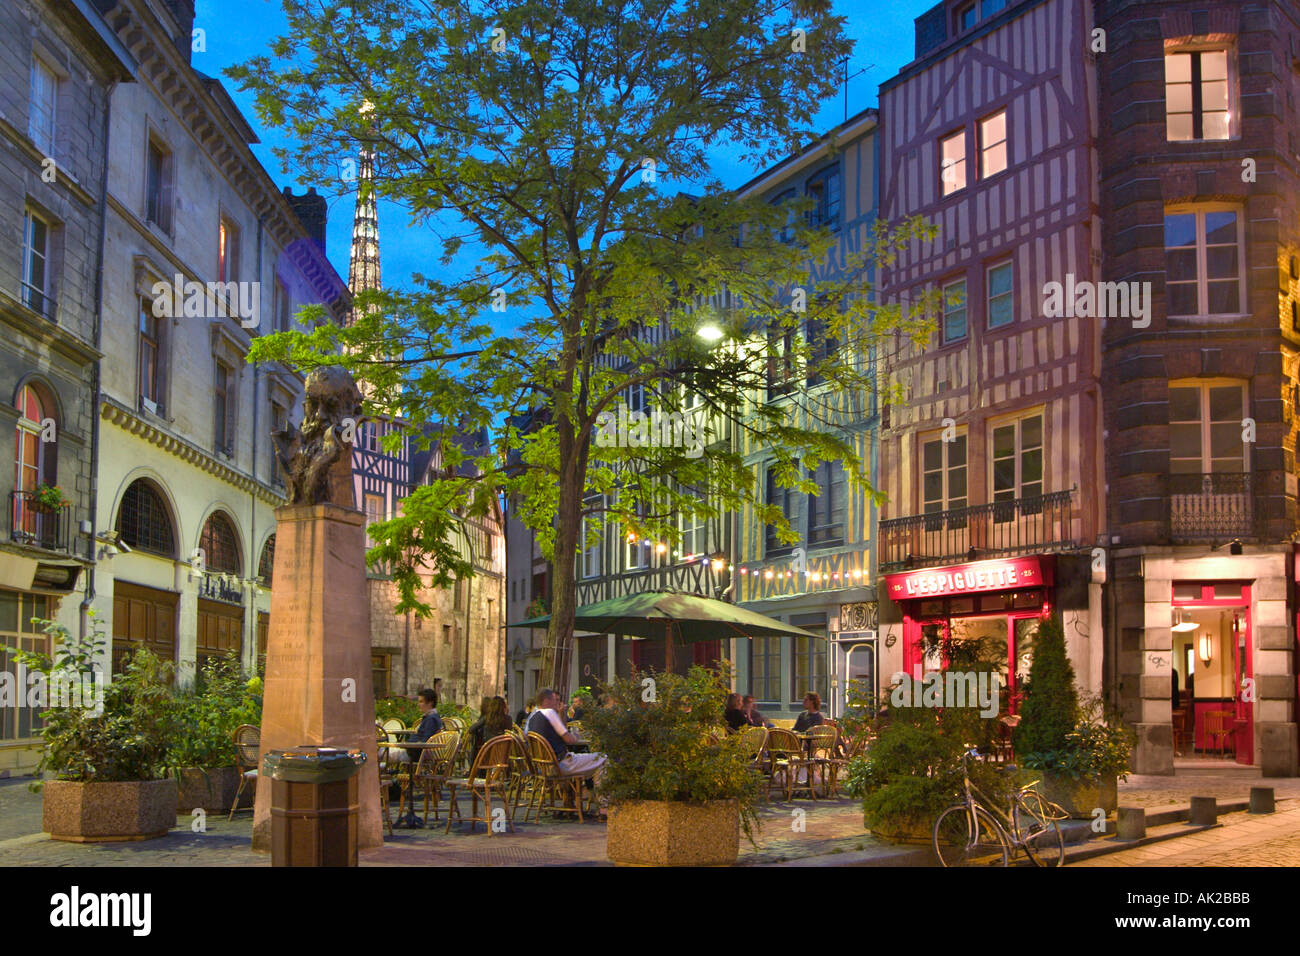 Restaurant at night in the Old Town, Rouen, Normandy, France - Stock Image